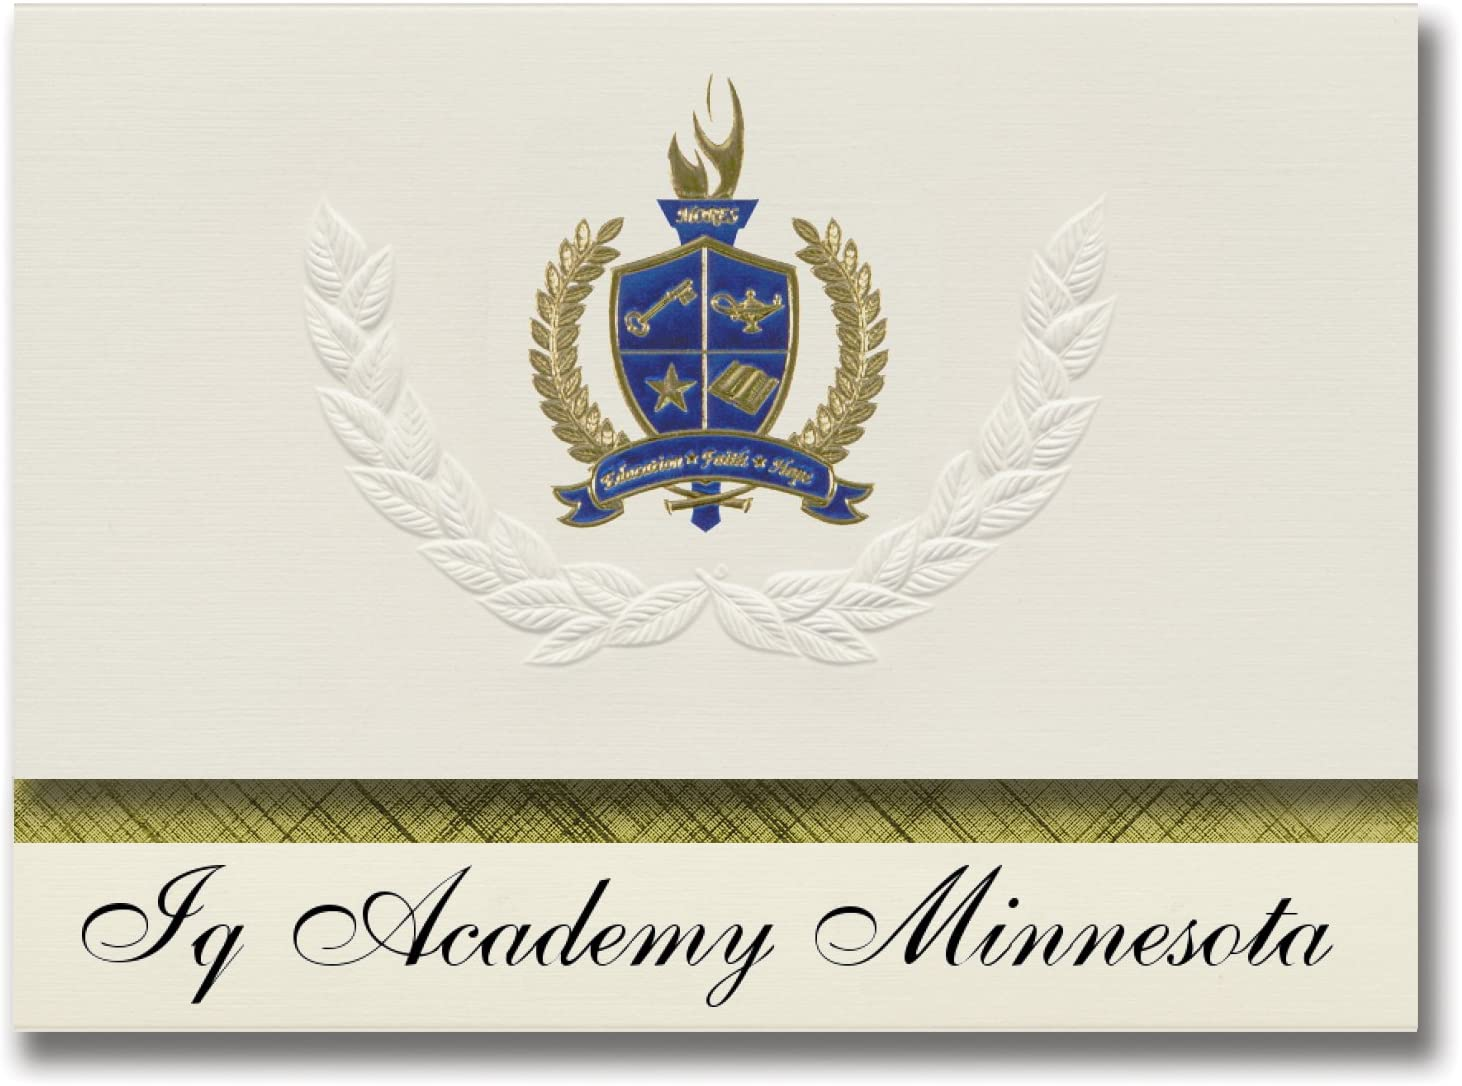 Signature Announcements Iq Academy Minnesota (Fergus Falls, MN) Graduation Announcements, Presidential style, Basic package of 25 with Gold & Blue Metallic Foil seal